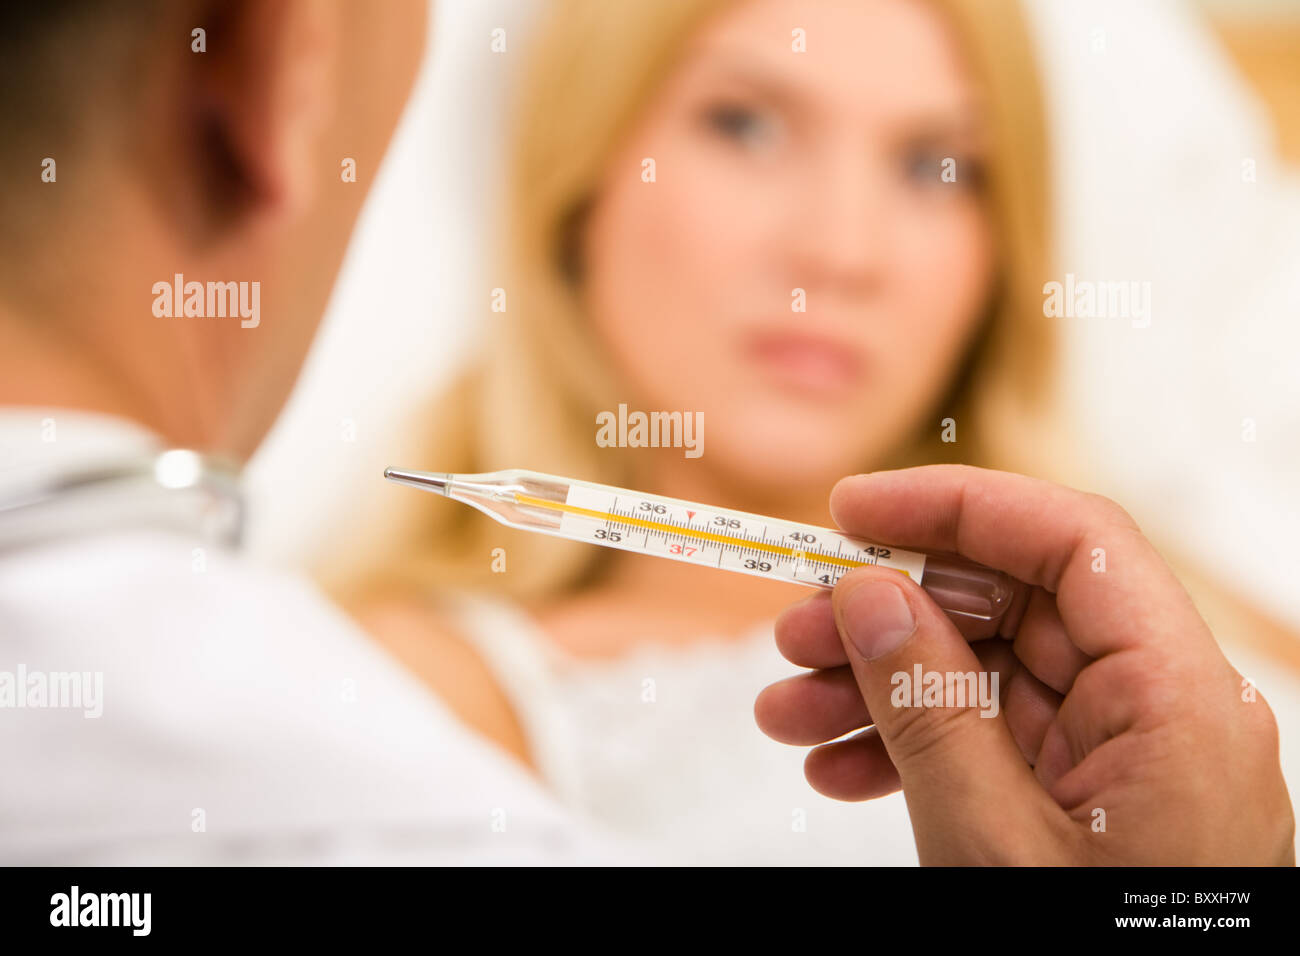 Close-up of doctor's hand holding thermometer with sick woman on background - Stock Image